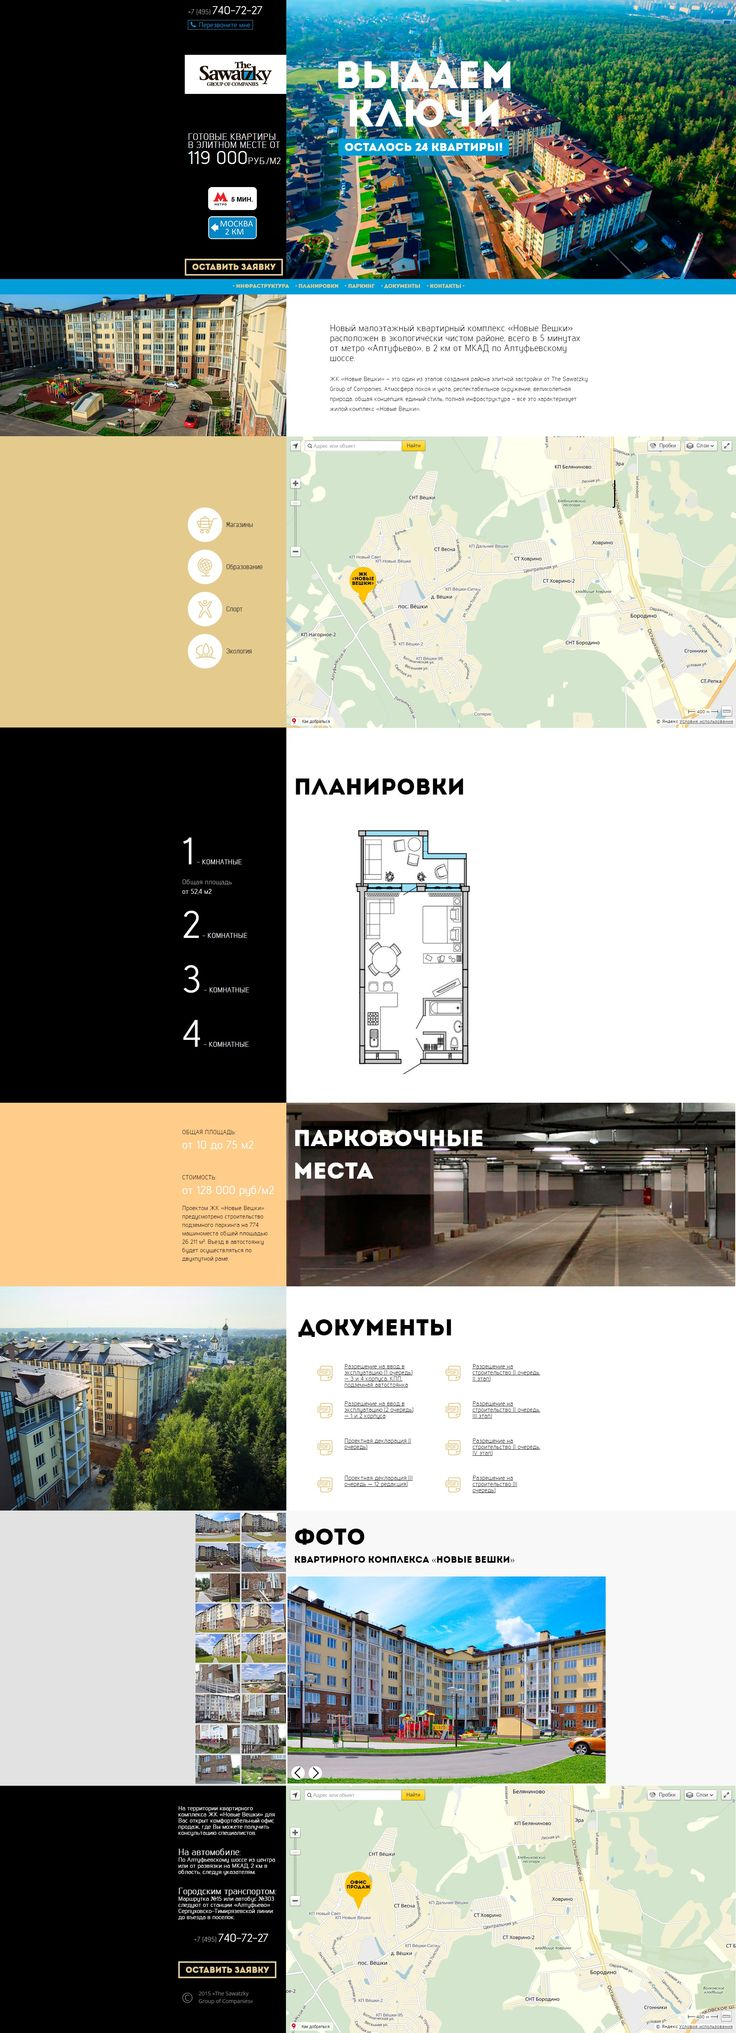 Website for real estate company Sawatskiy. Detailed plan of flats - ability to choose flat on website. Web design / web development / graphic design / web page / real estate / apartments